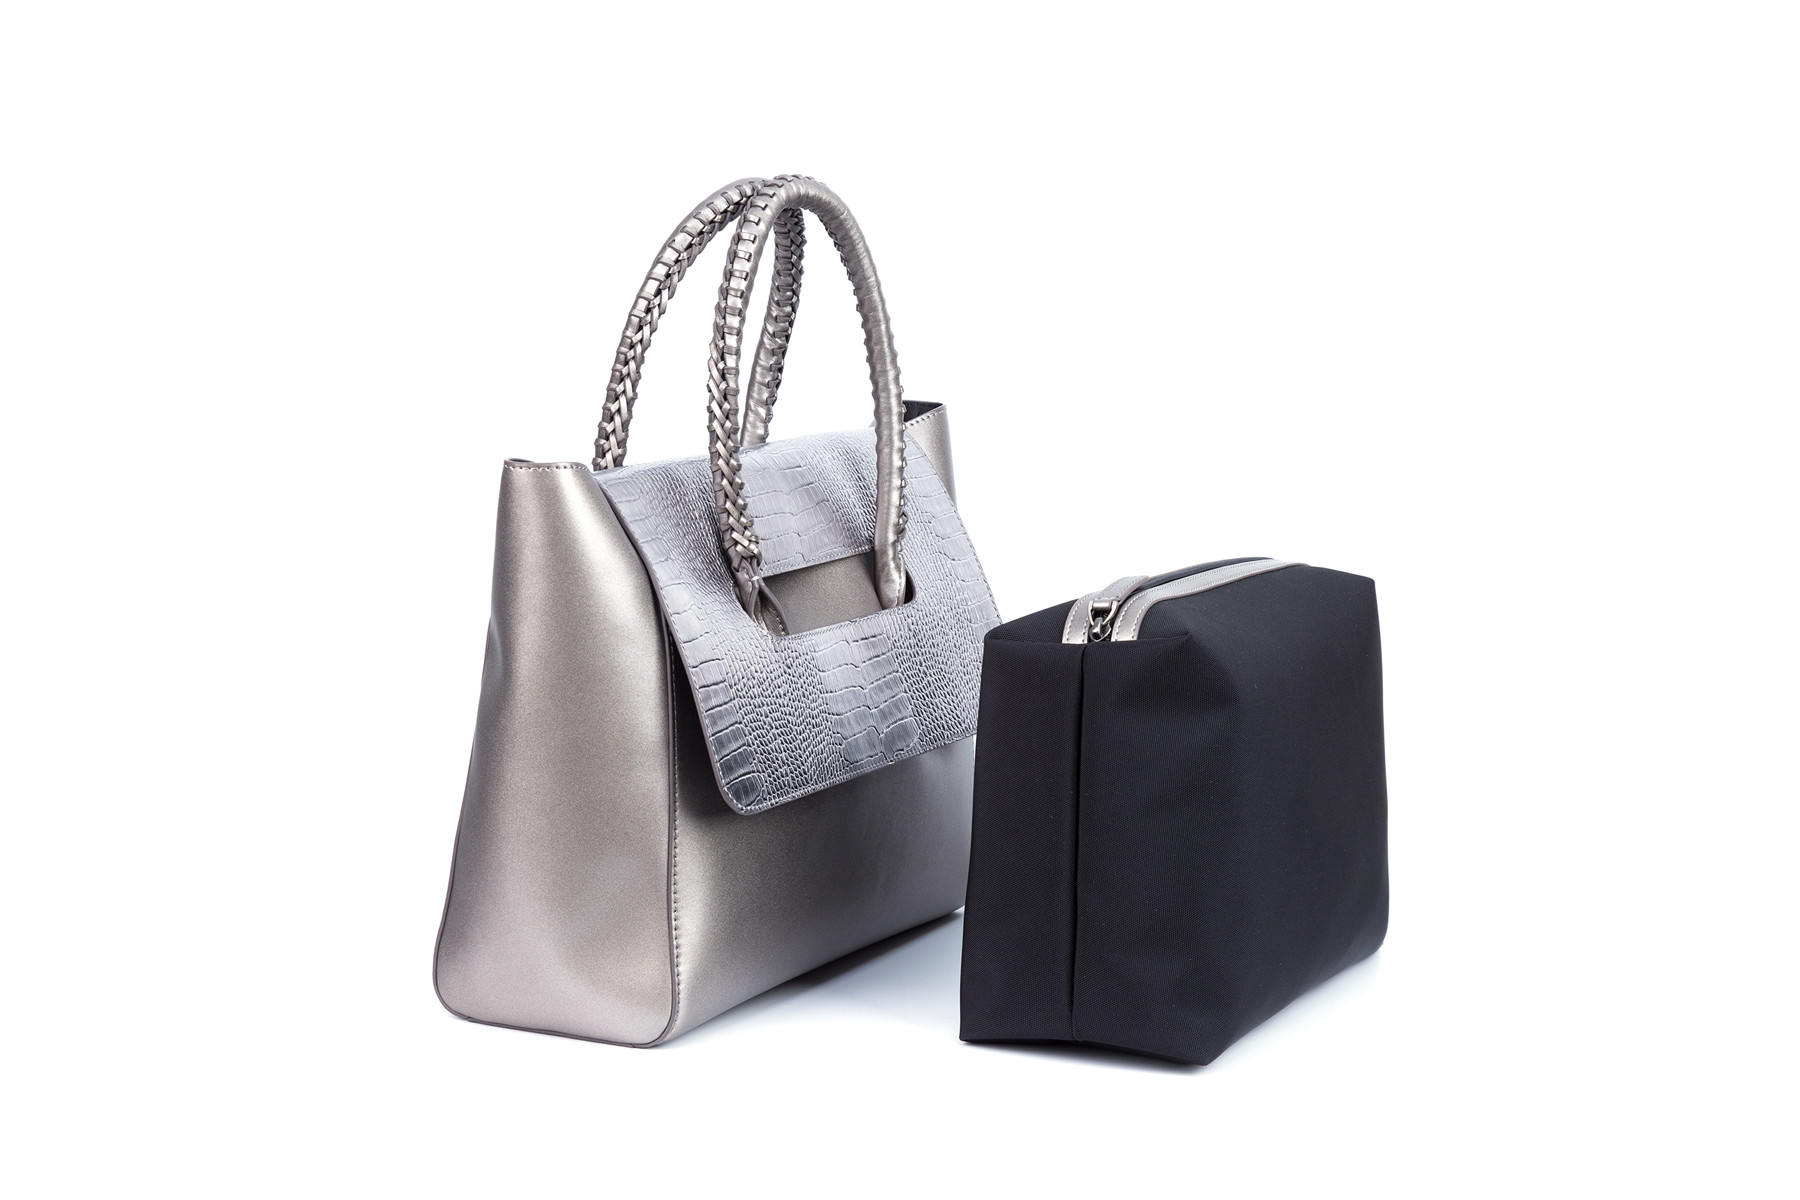 GF bags-Bulk Luxury Handbags Manufacturer, Affordable Handbags | Gf Bags-7